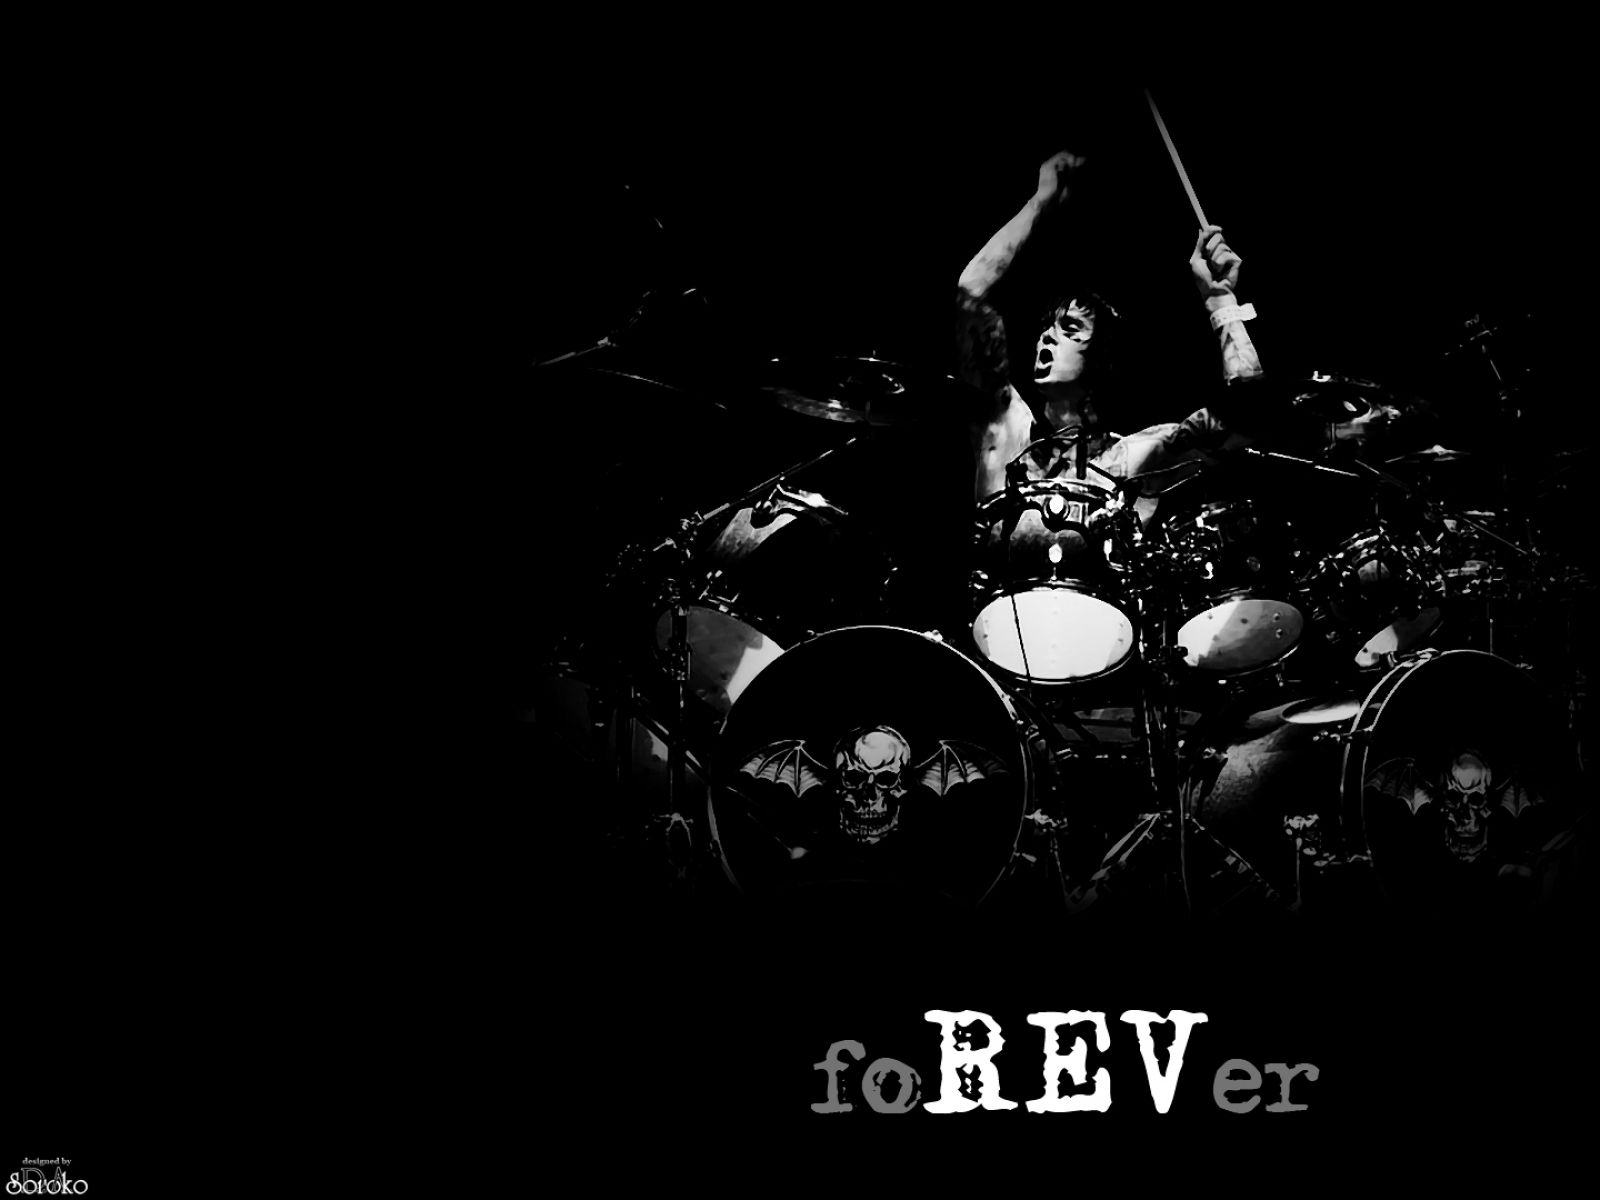 A7X The Rev FoREVer Drums Avenged sevenfold wallpapers 1600x1200